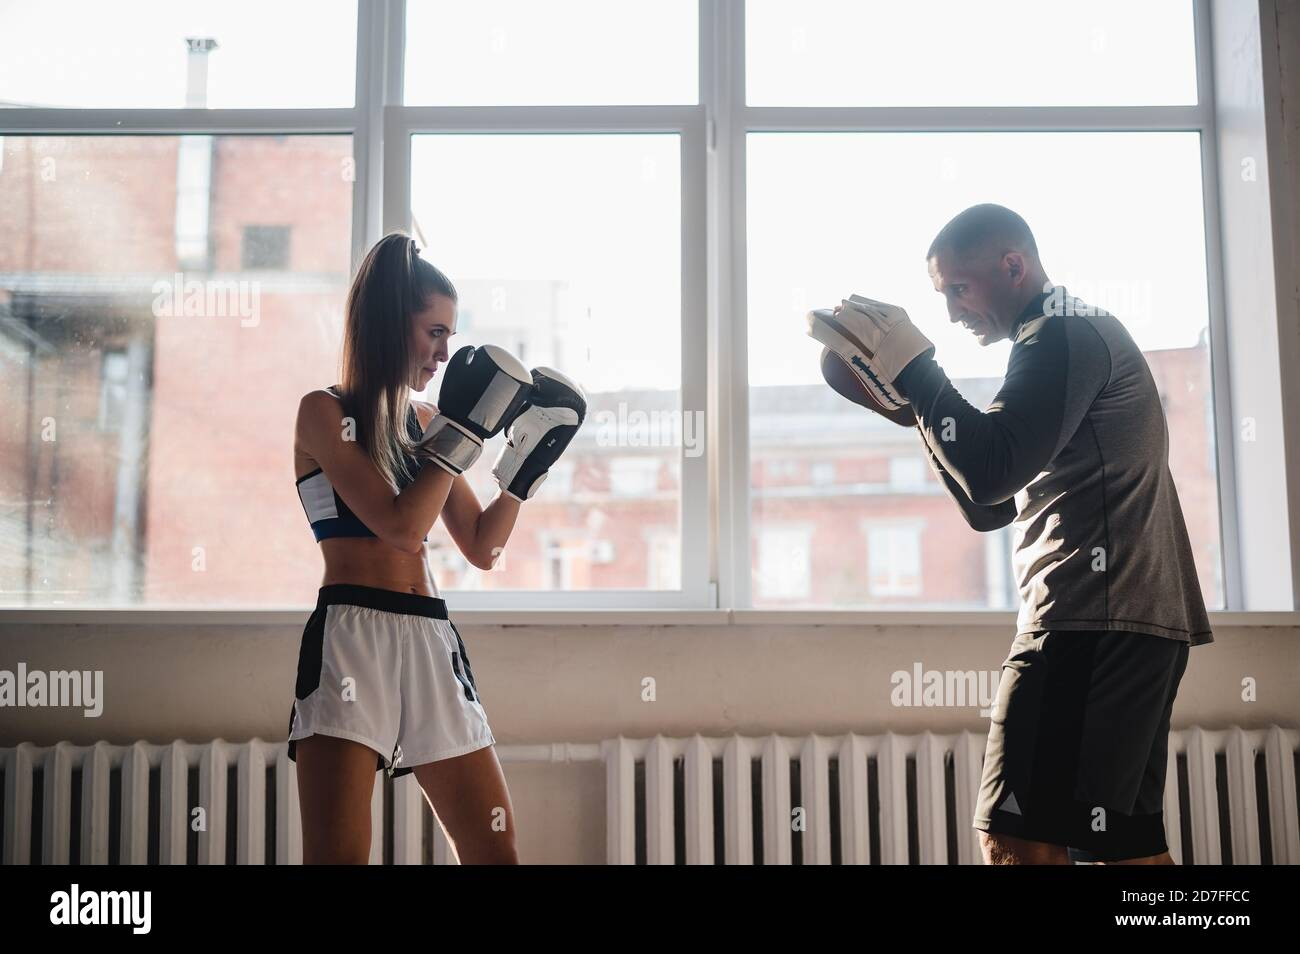 A man with boxing paws on his hands teaches the technique of hitting a novice girl in a light gym Stock Photo